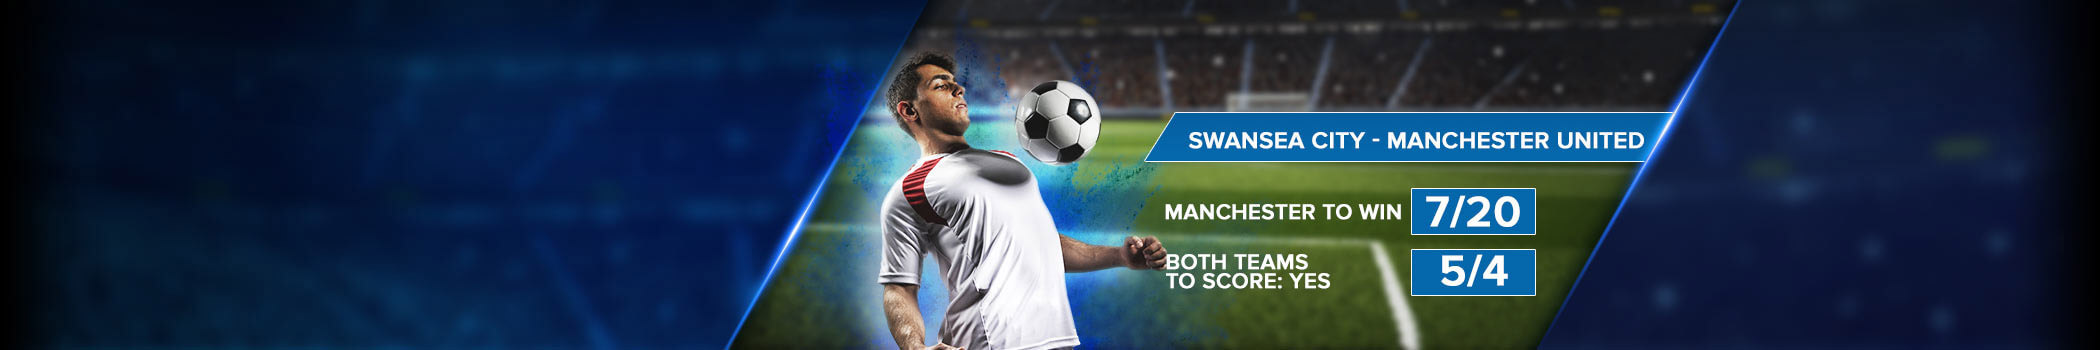 Swansea vs Manchester United!